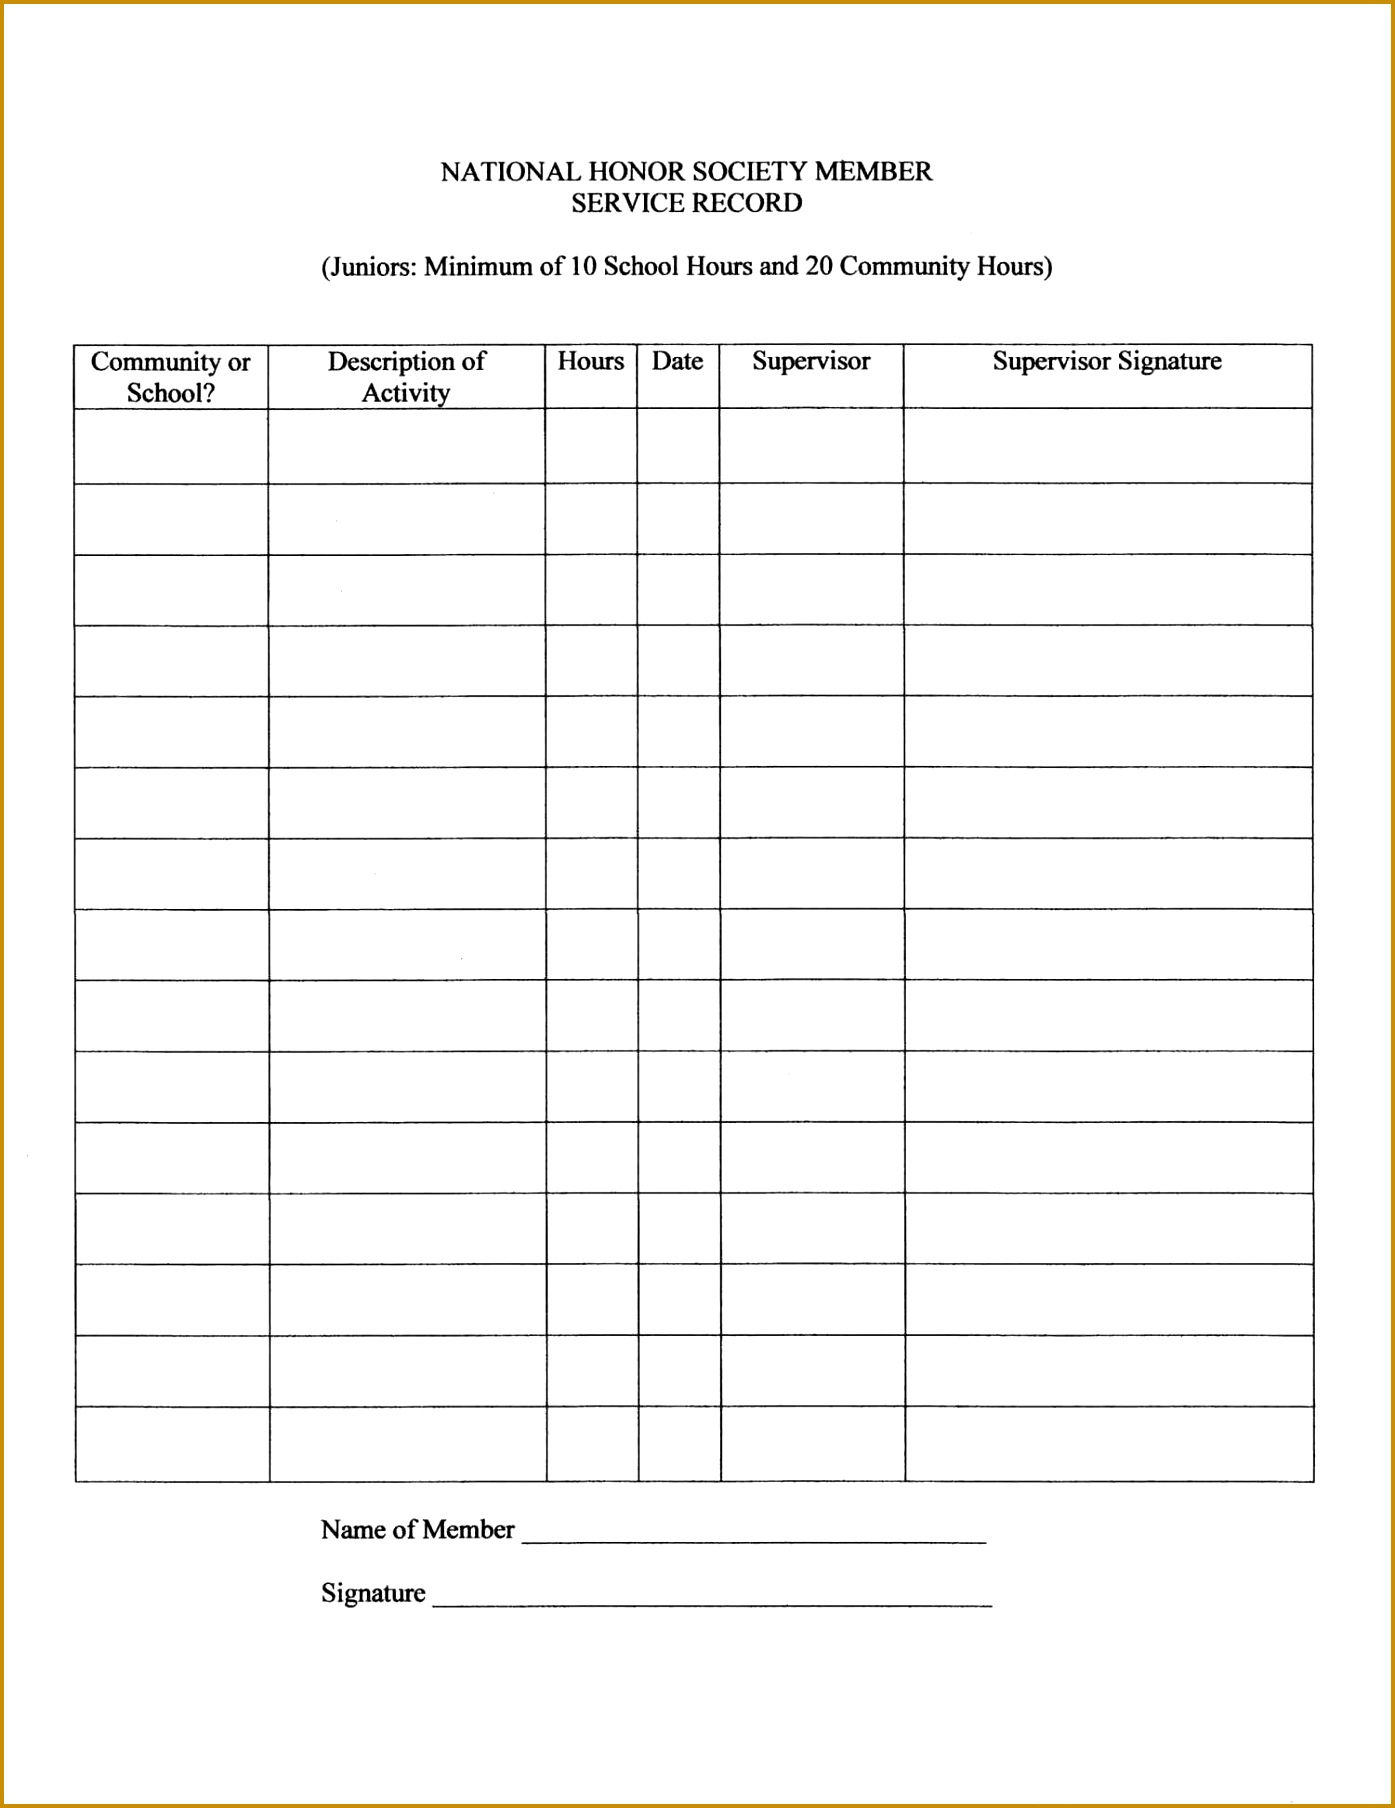 What Hours Maintenance Log Sheet Log Sheet Printable munity Chart Volunteer Template What Maintenance Memo Templates 18081395